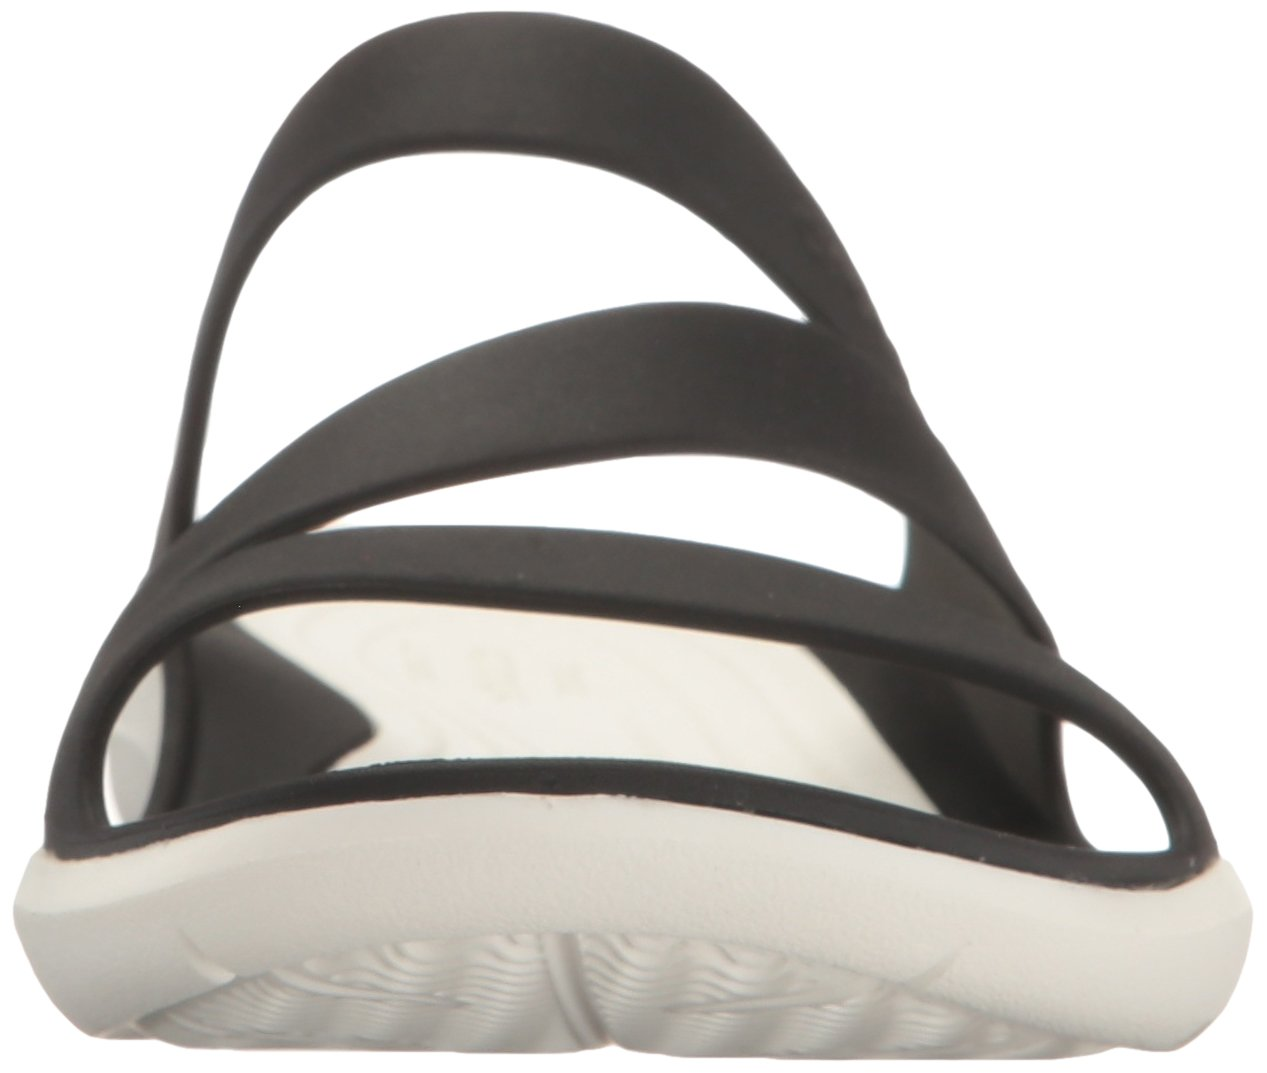 Crocs Women's Swiftwater Sandal B01H70LSHE 8 B(M) US|Black/White